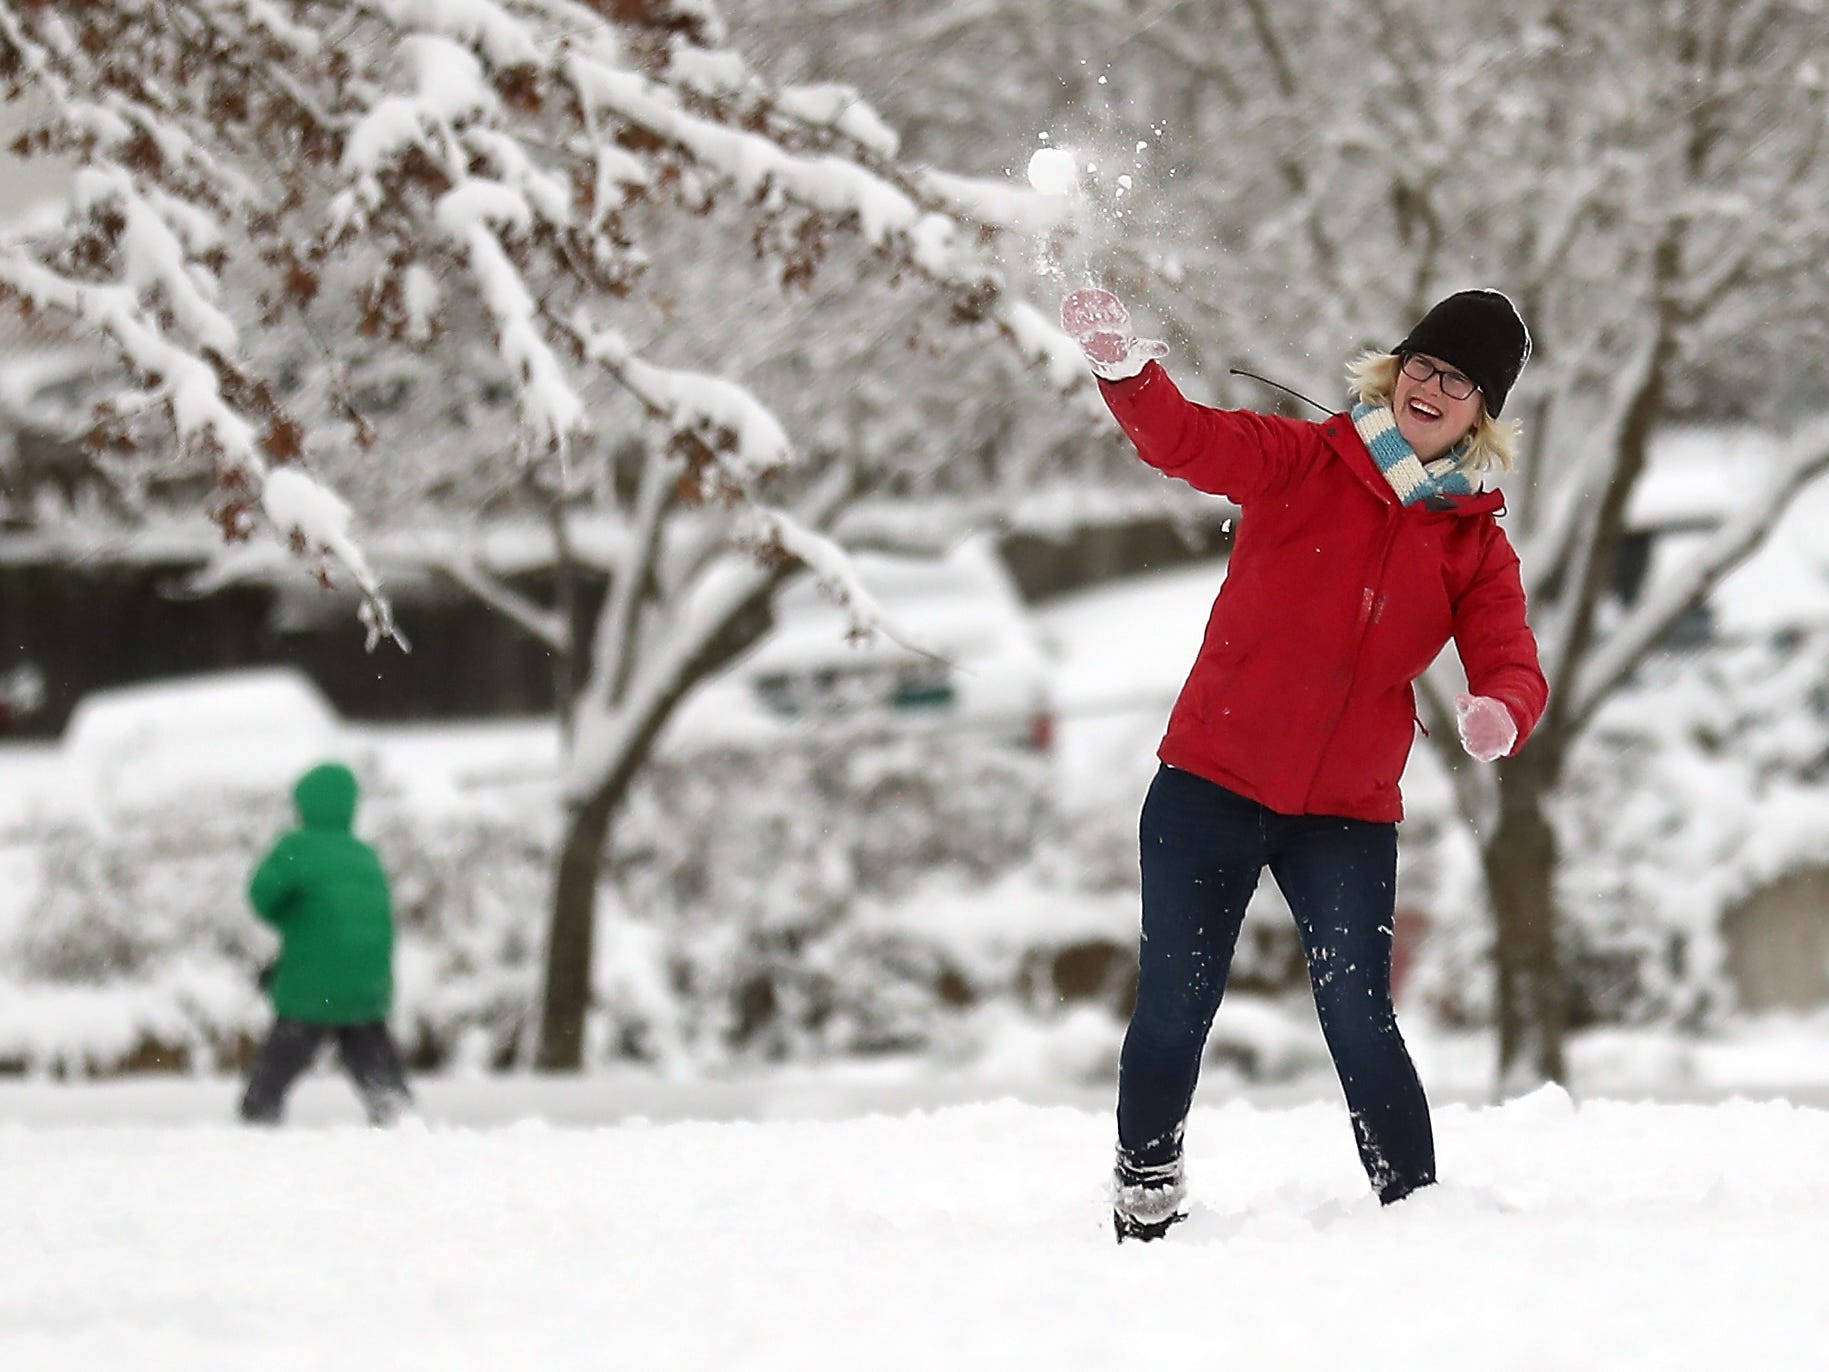 Joelle Dempster lets a snowball fly at Evergreen Rotary Park in Bremerton on Saturday, February 9, 2019.